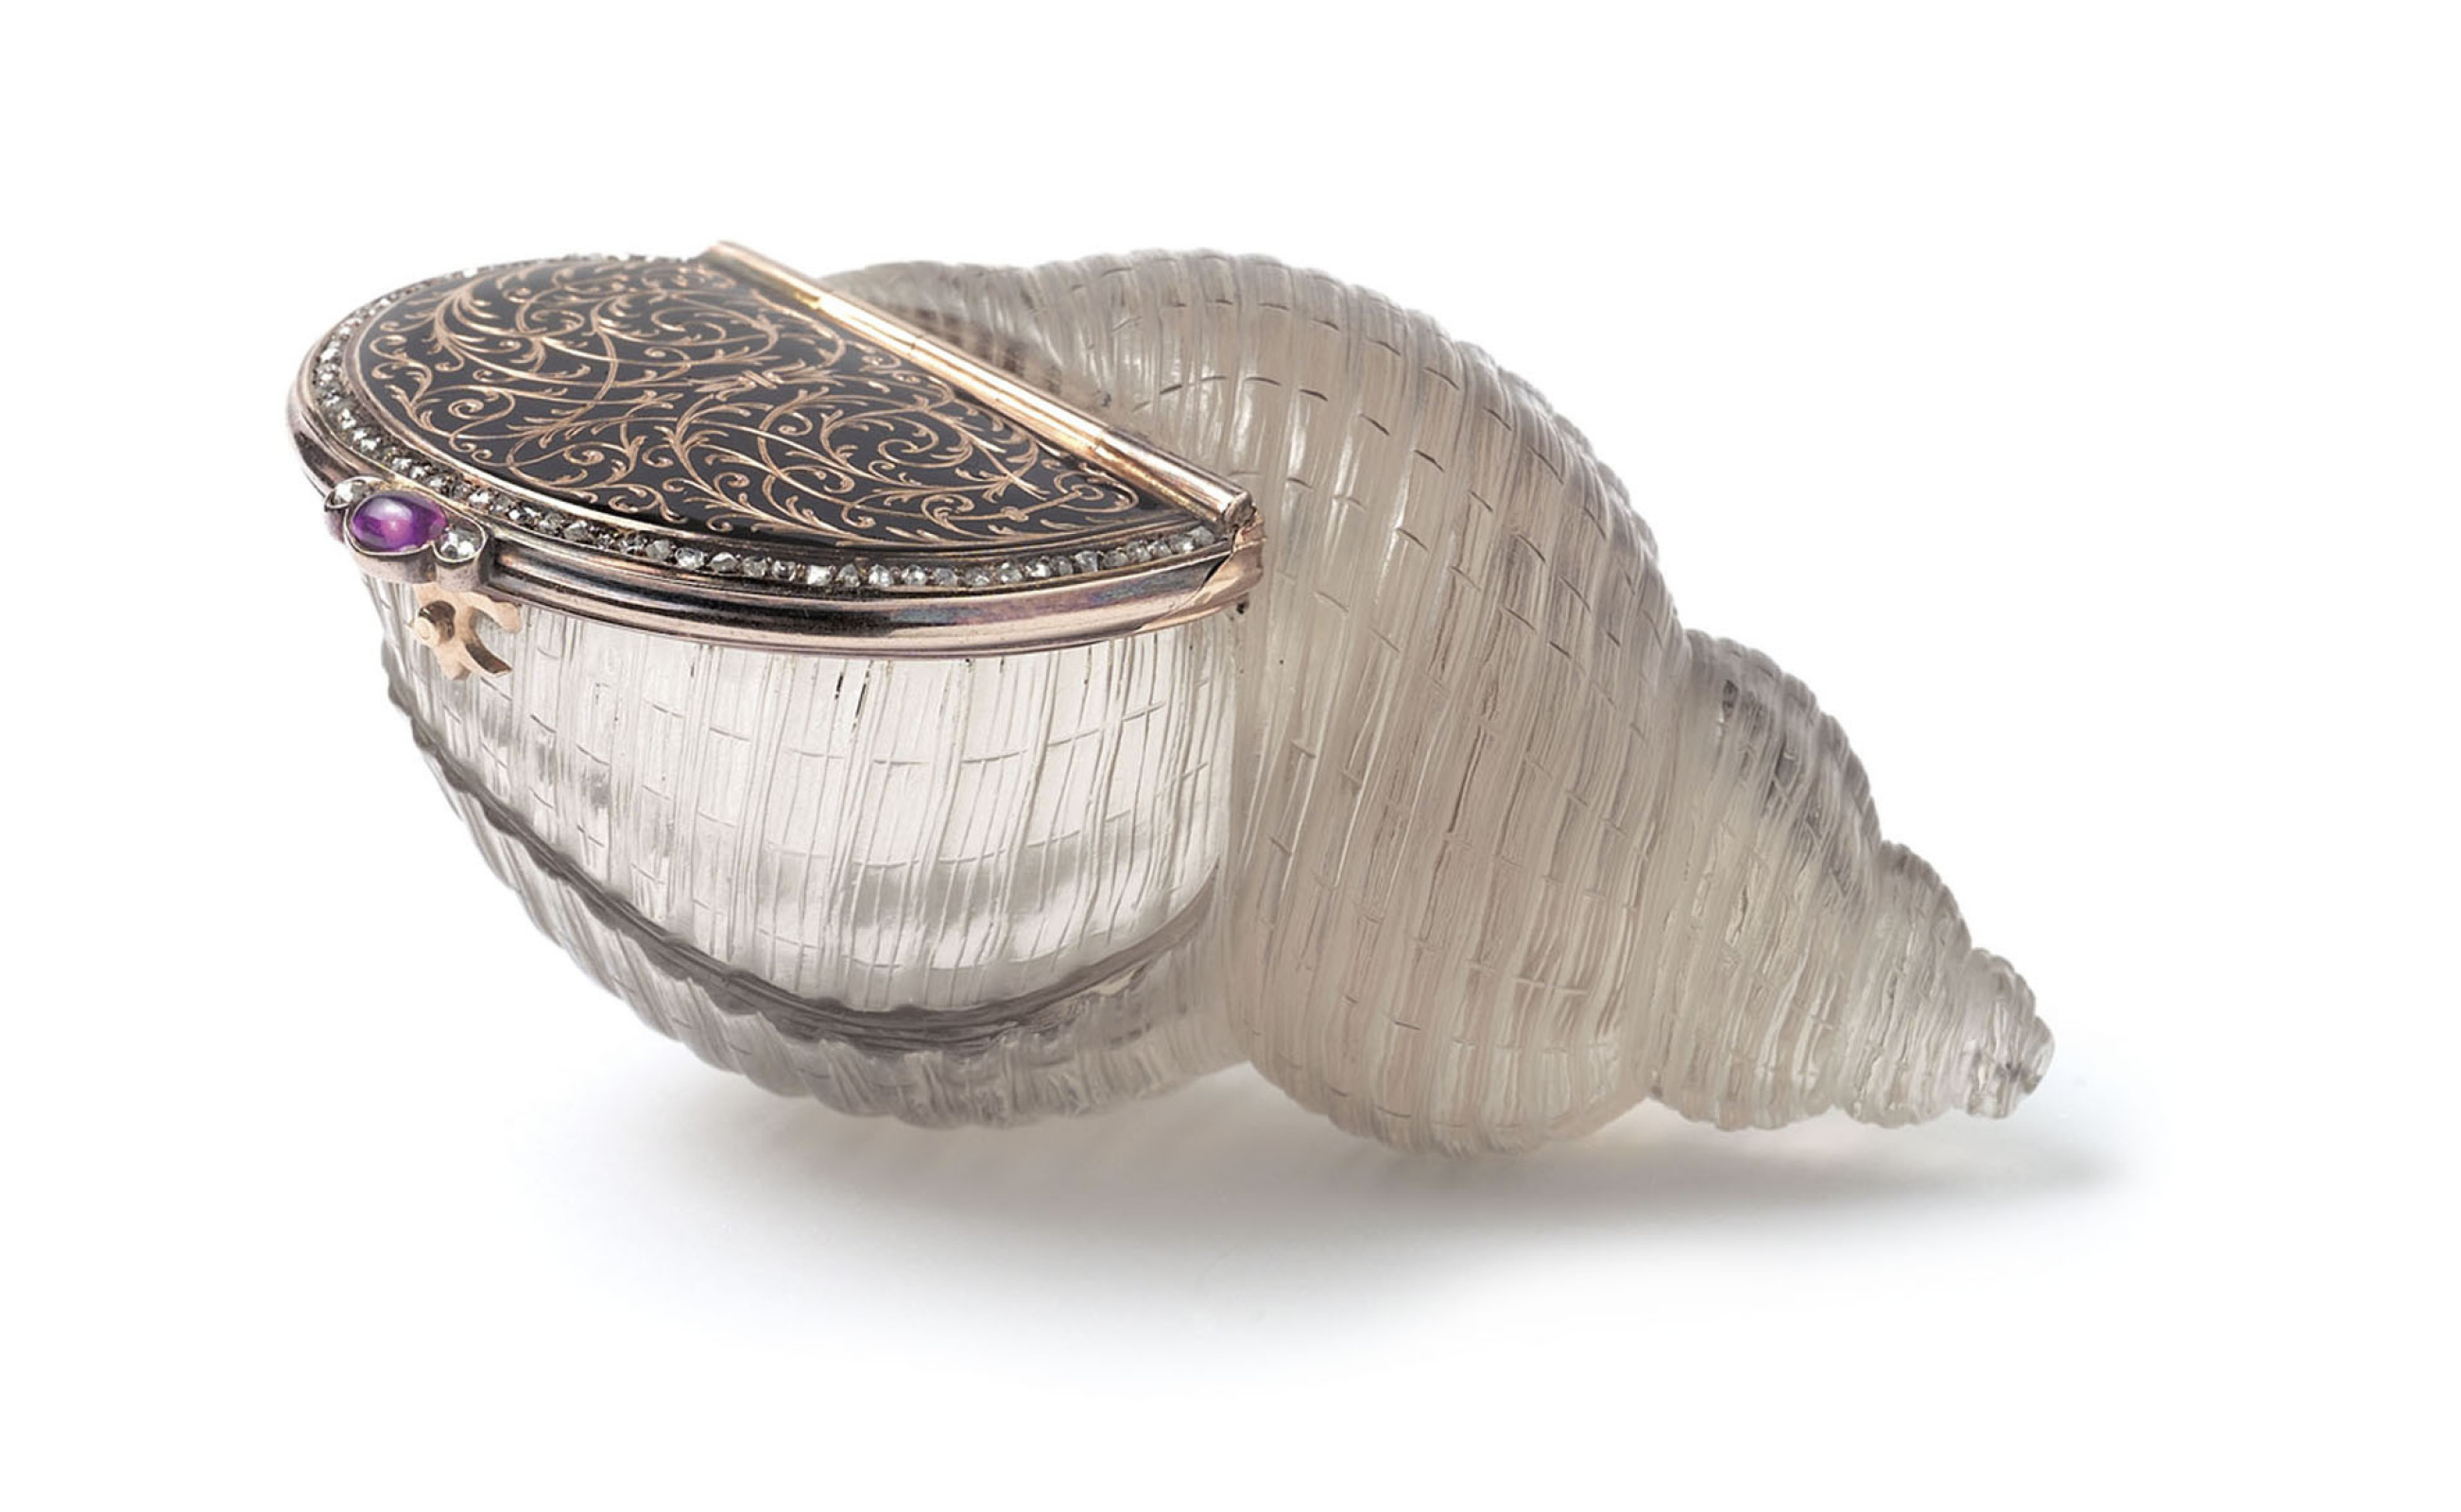 The shell-shaped enamel bonbonniere cut from solid topaz with hinged lid. The lid is inlaid with gol